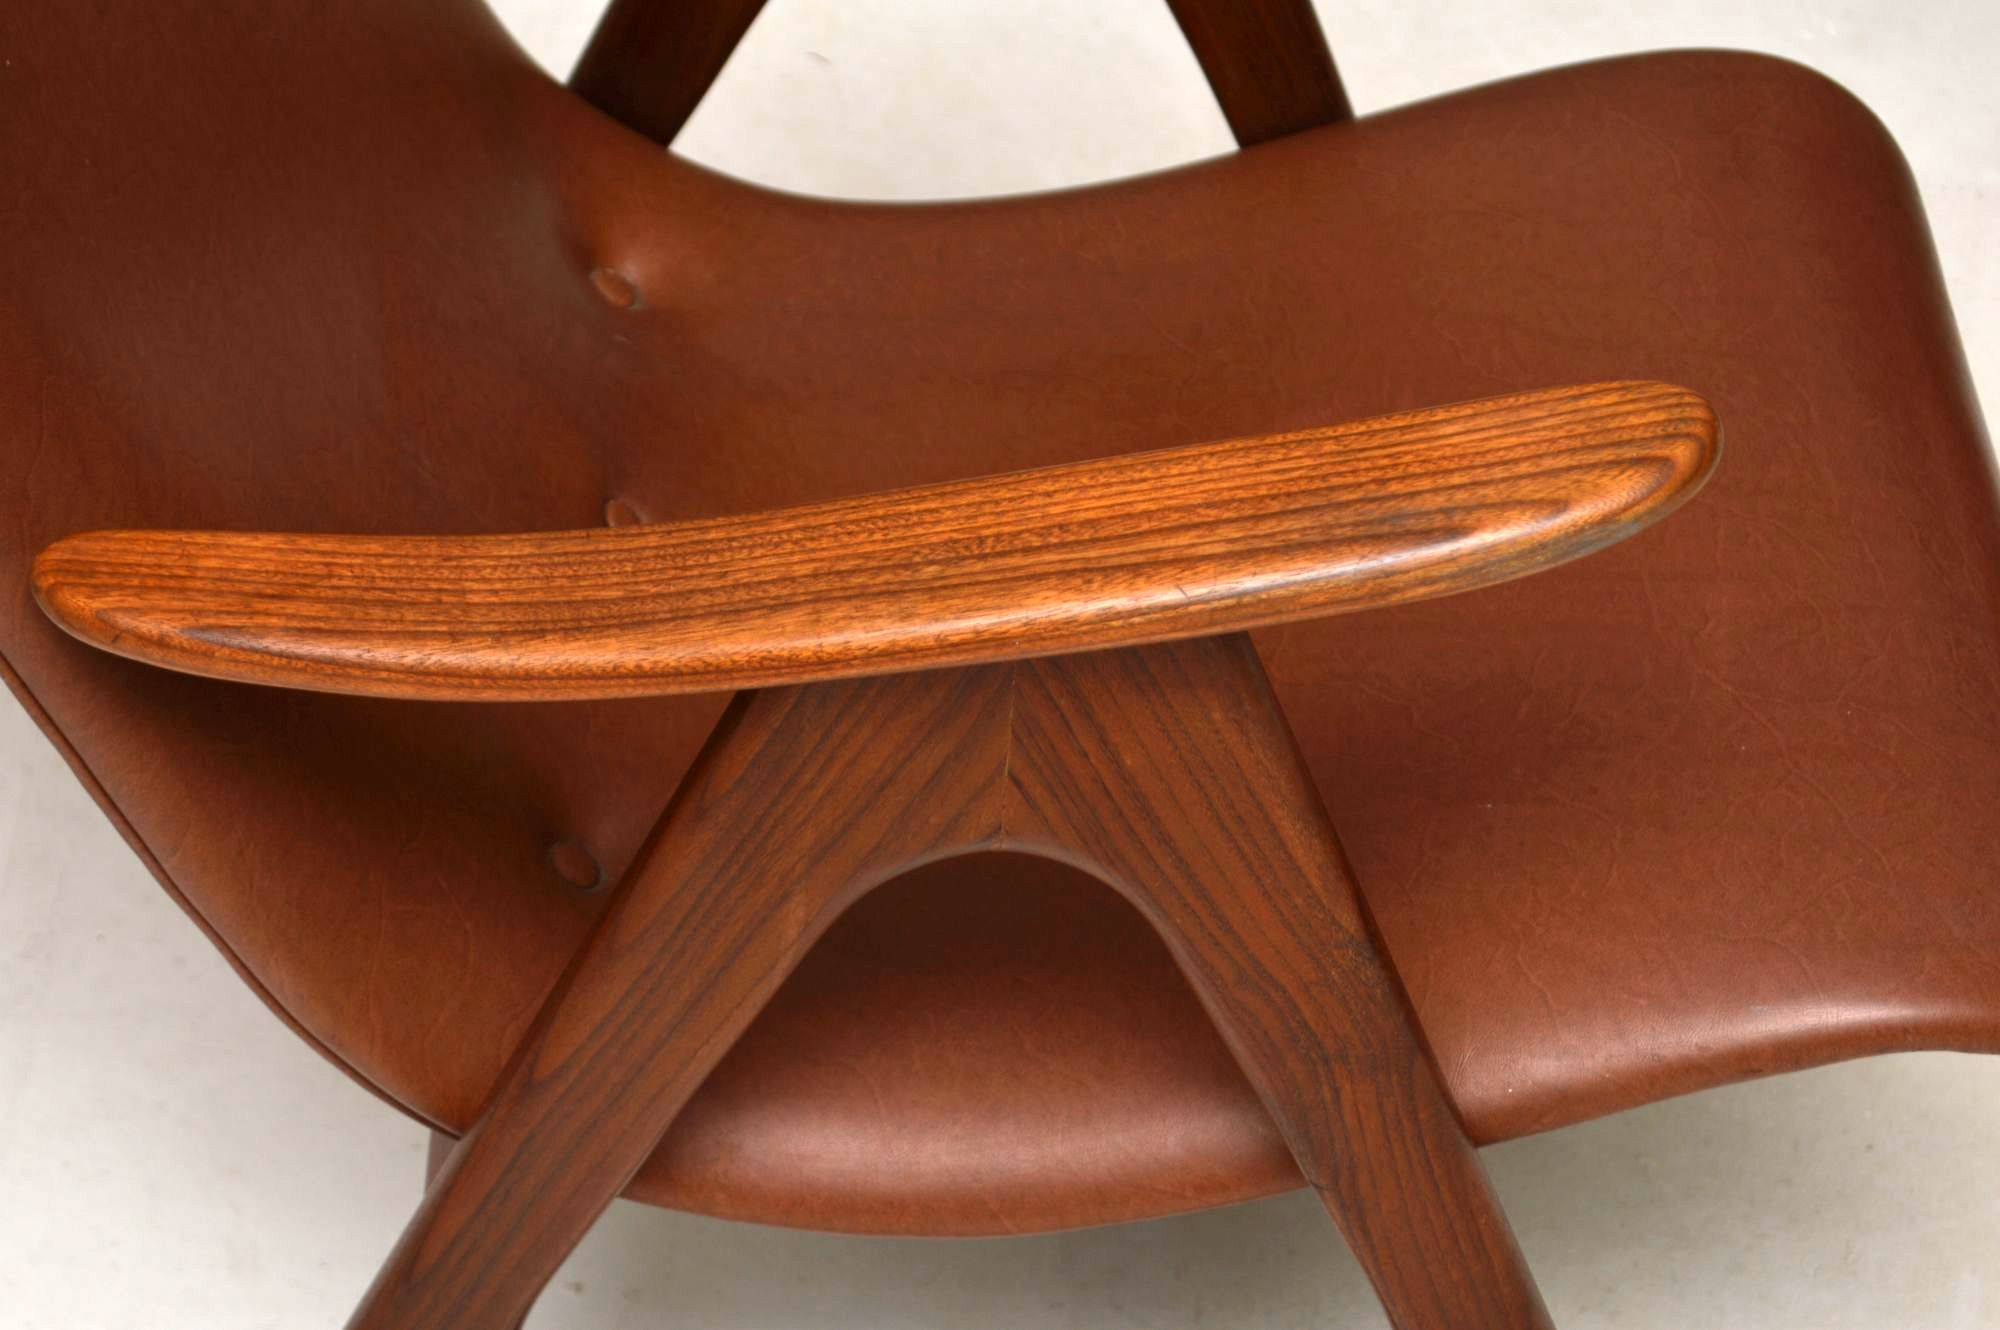 Danish Furniture St Louis 1950s Dutch Vintage Armchair By Louis Van Teeffelen